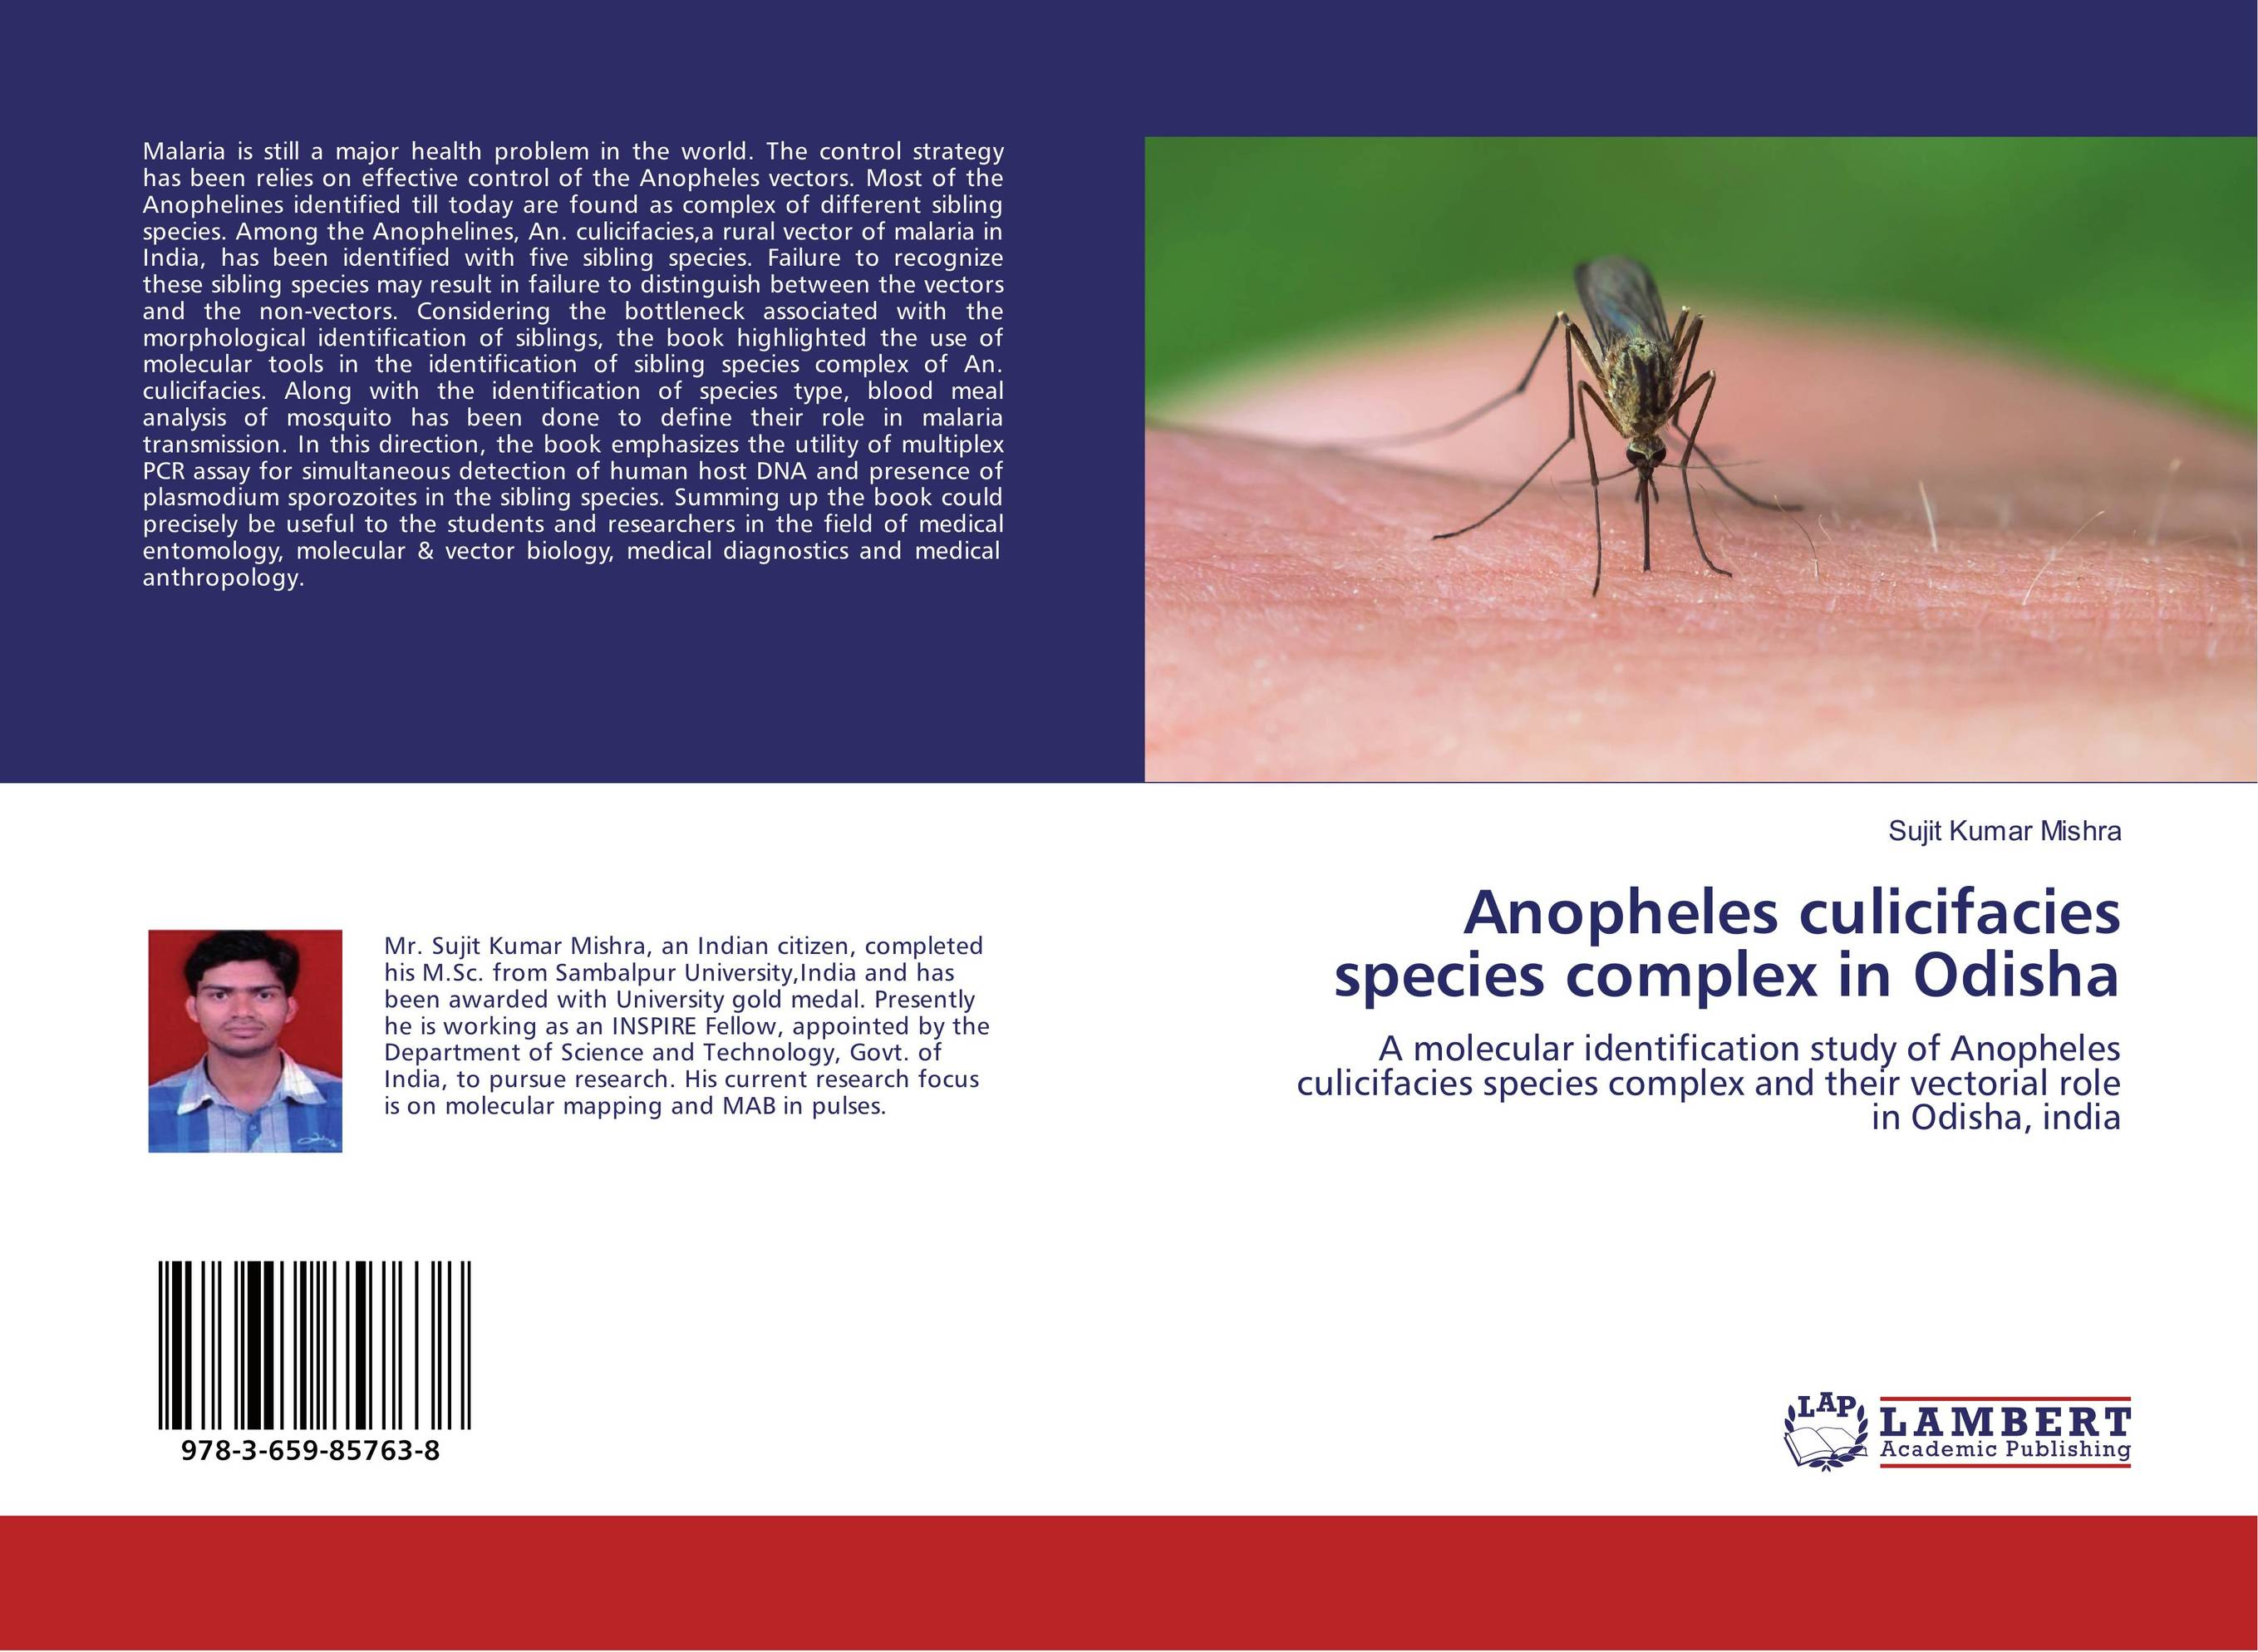 Anopheles culicifacies species complex in Odisha